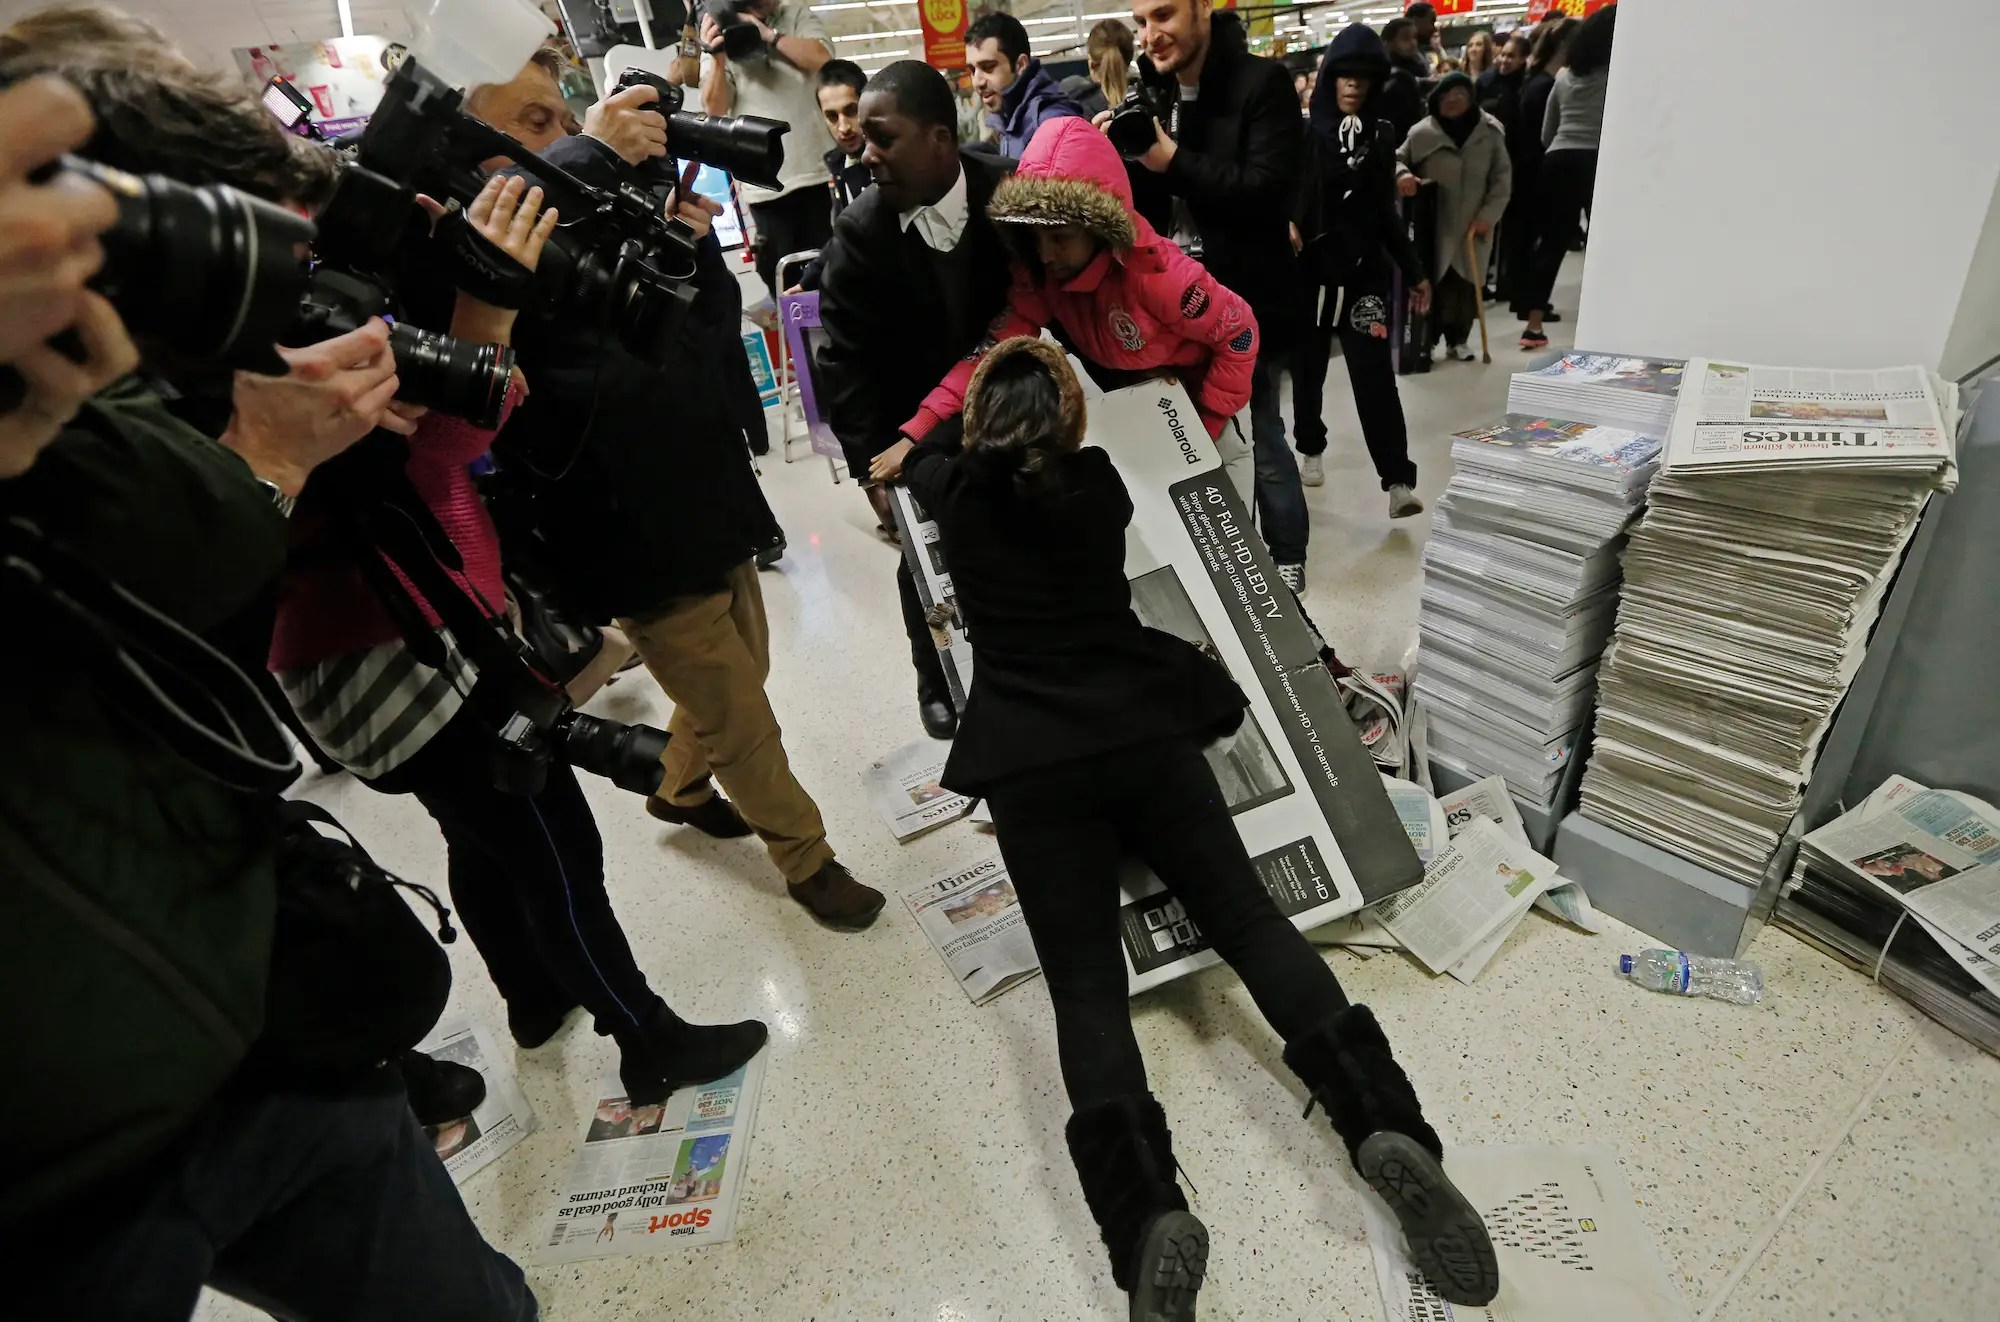 Black Friday Shopping Why Black Friday Deals Cause Shoppers To Behave So Badly